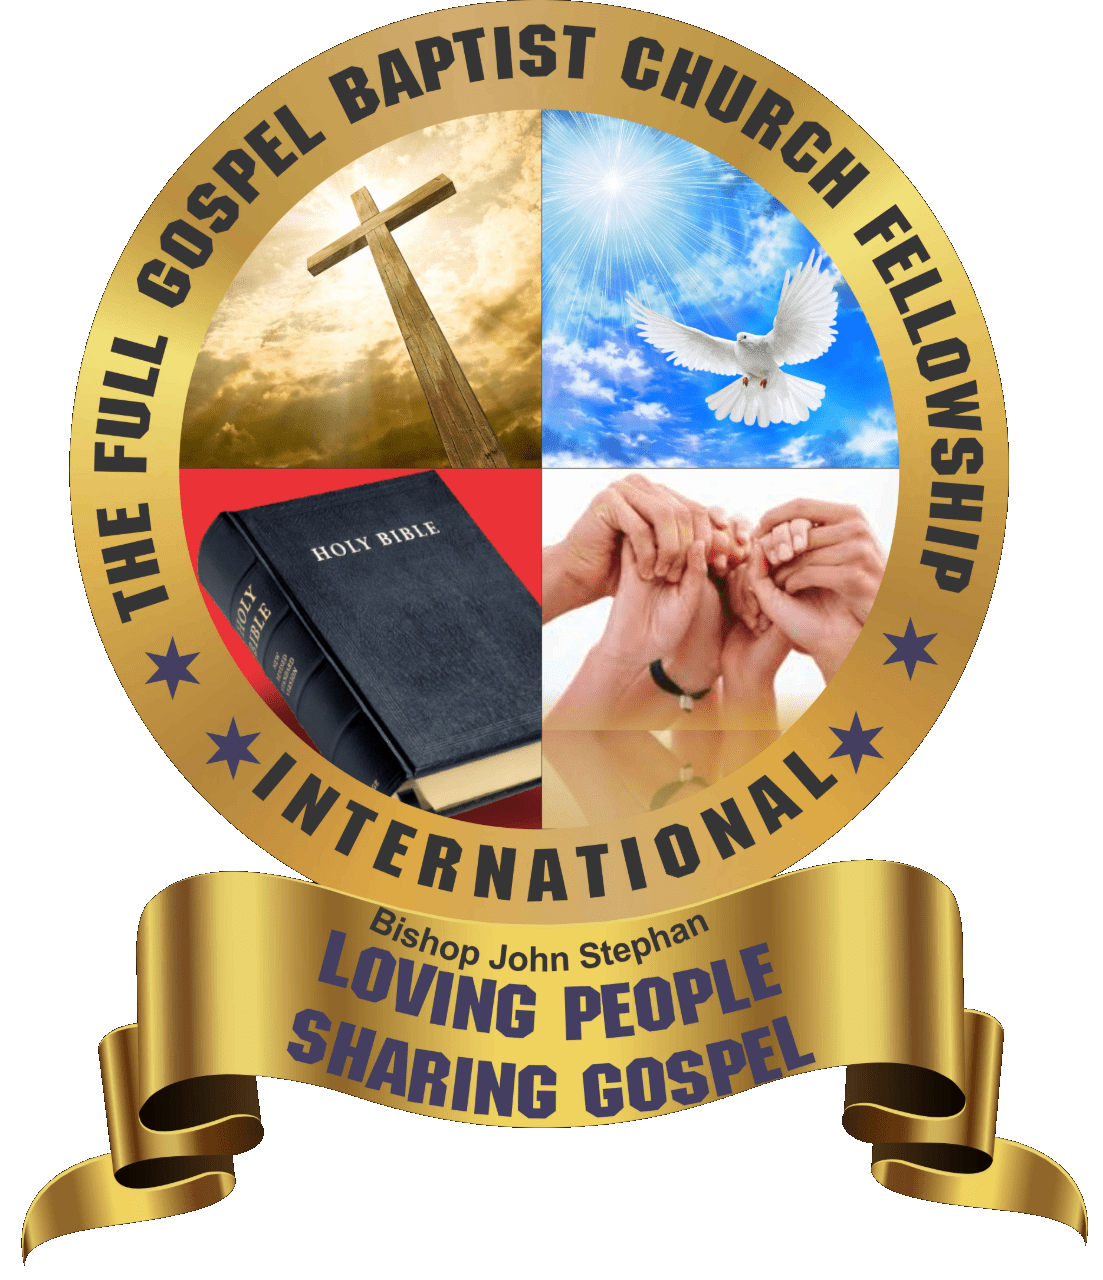 The Full Gospel Baptist Church Fellowship